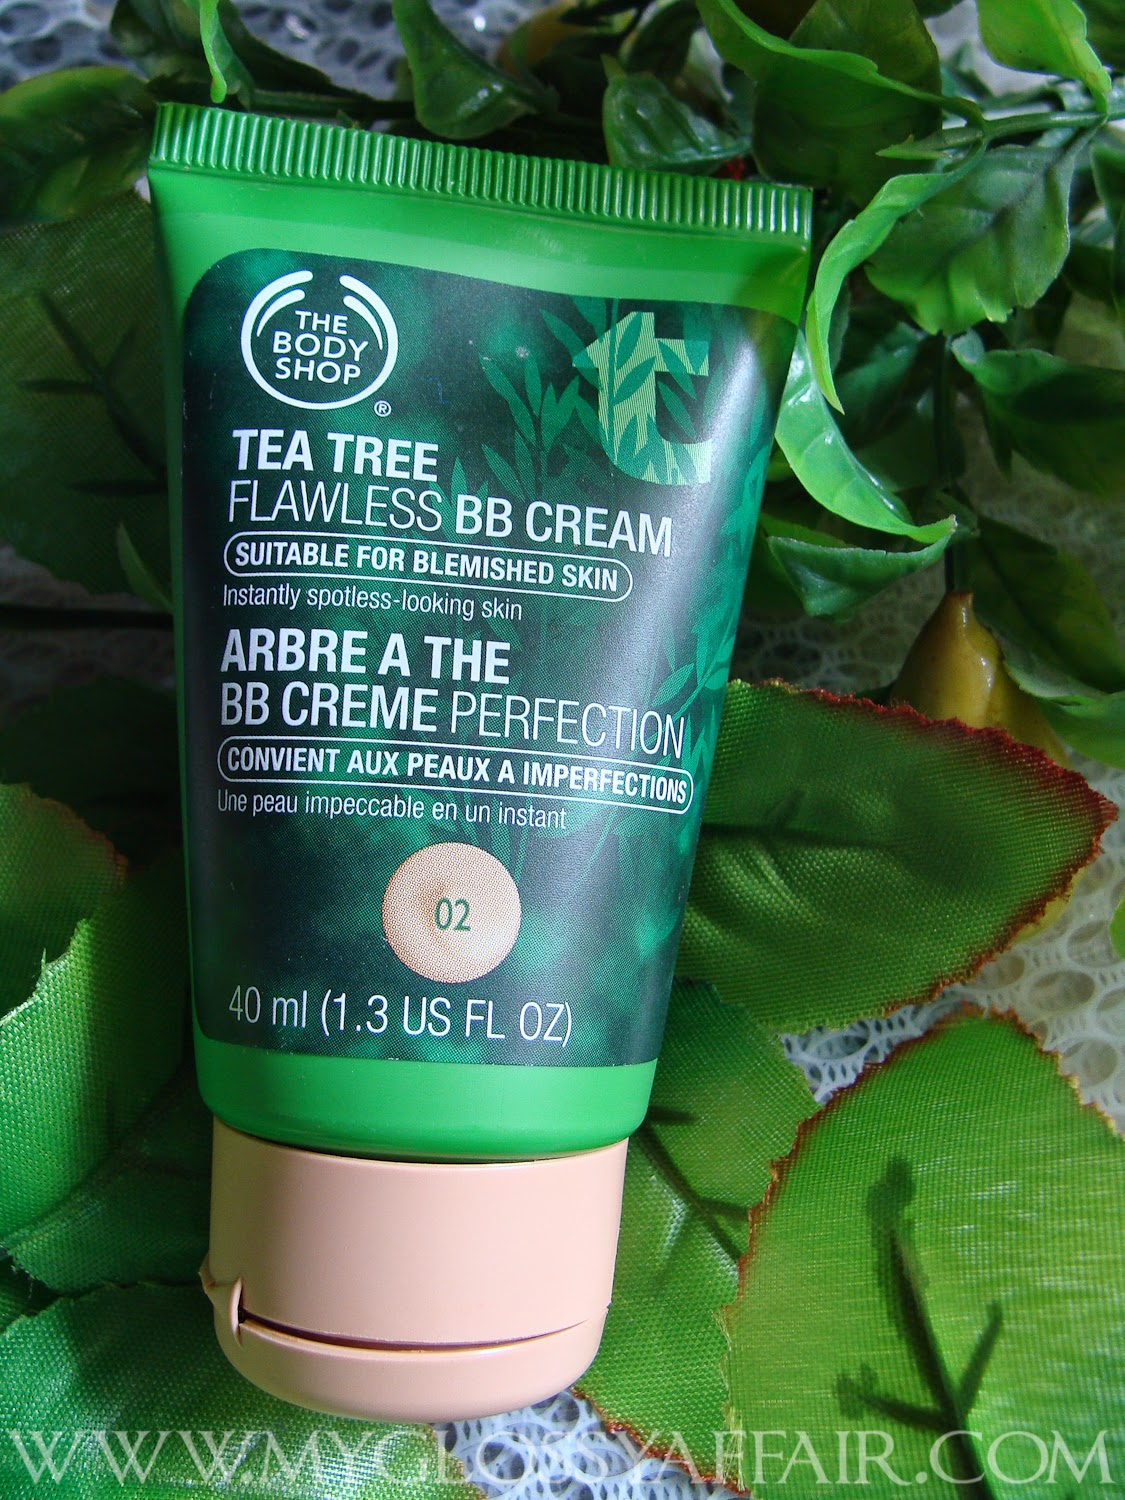 The Body Shop Tea Tree BB Cream Review and Swatches